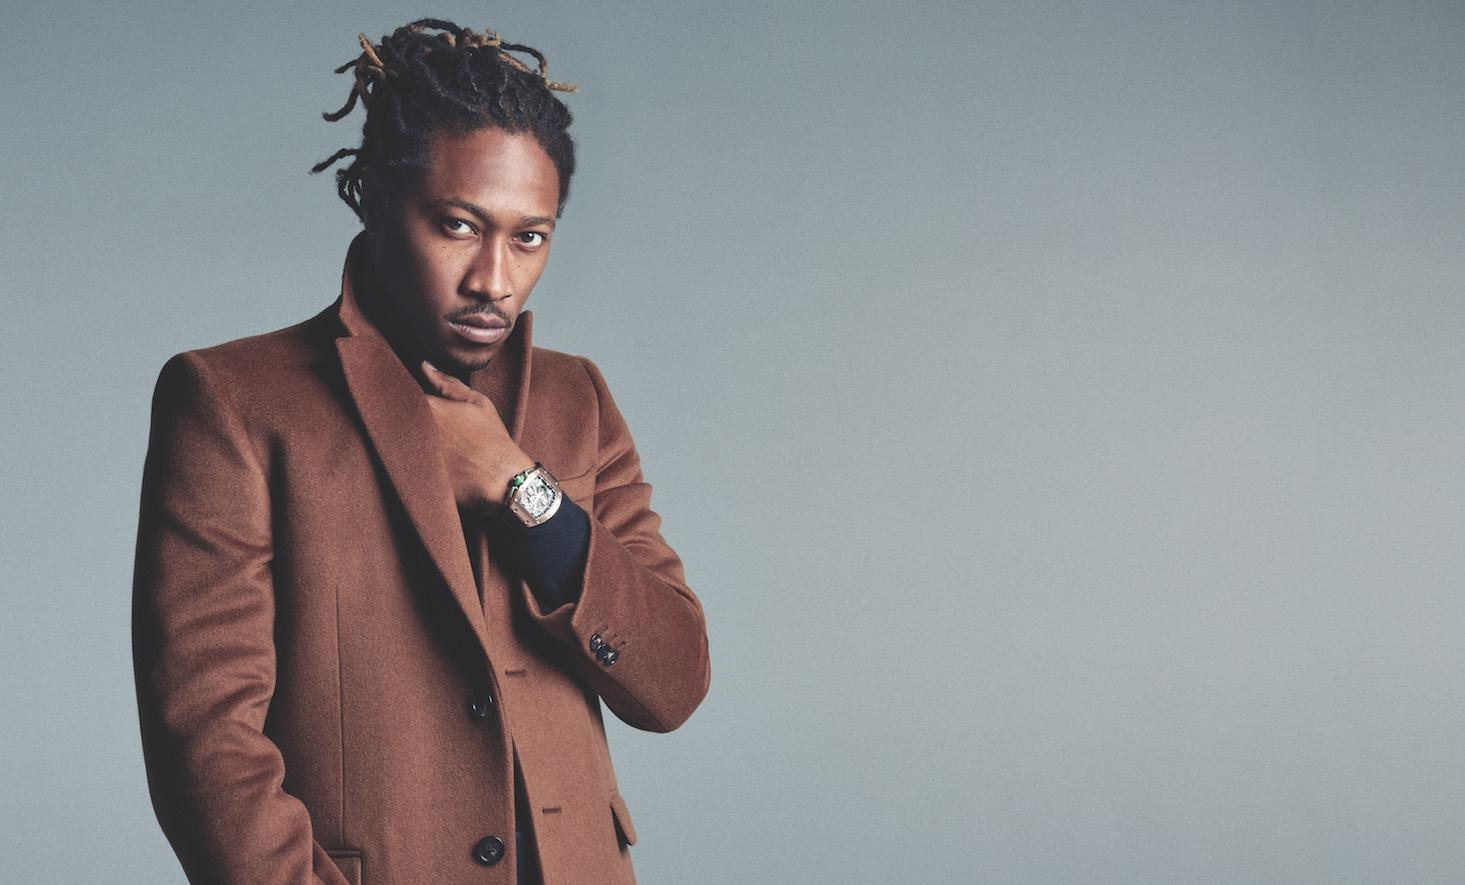 Future Channels His Drama Into Music: 'I Don't Know Her Name But She Had My Child'